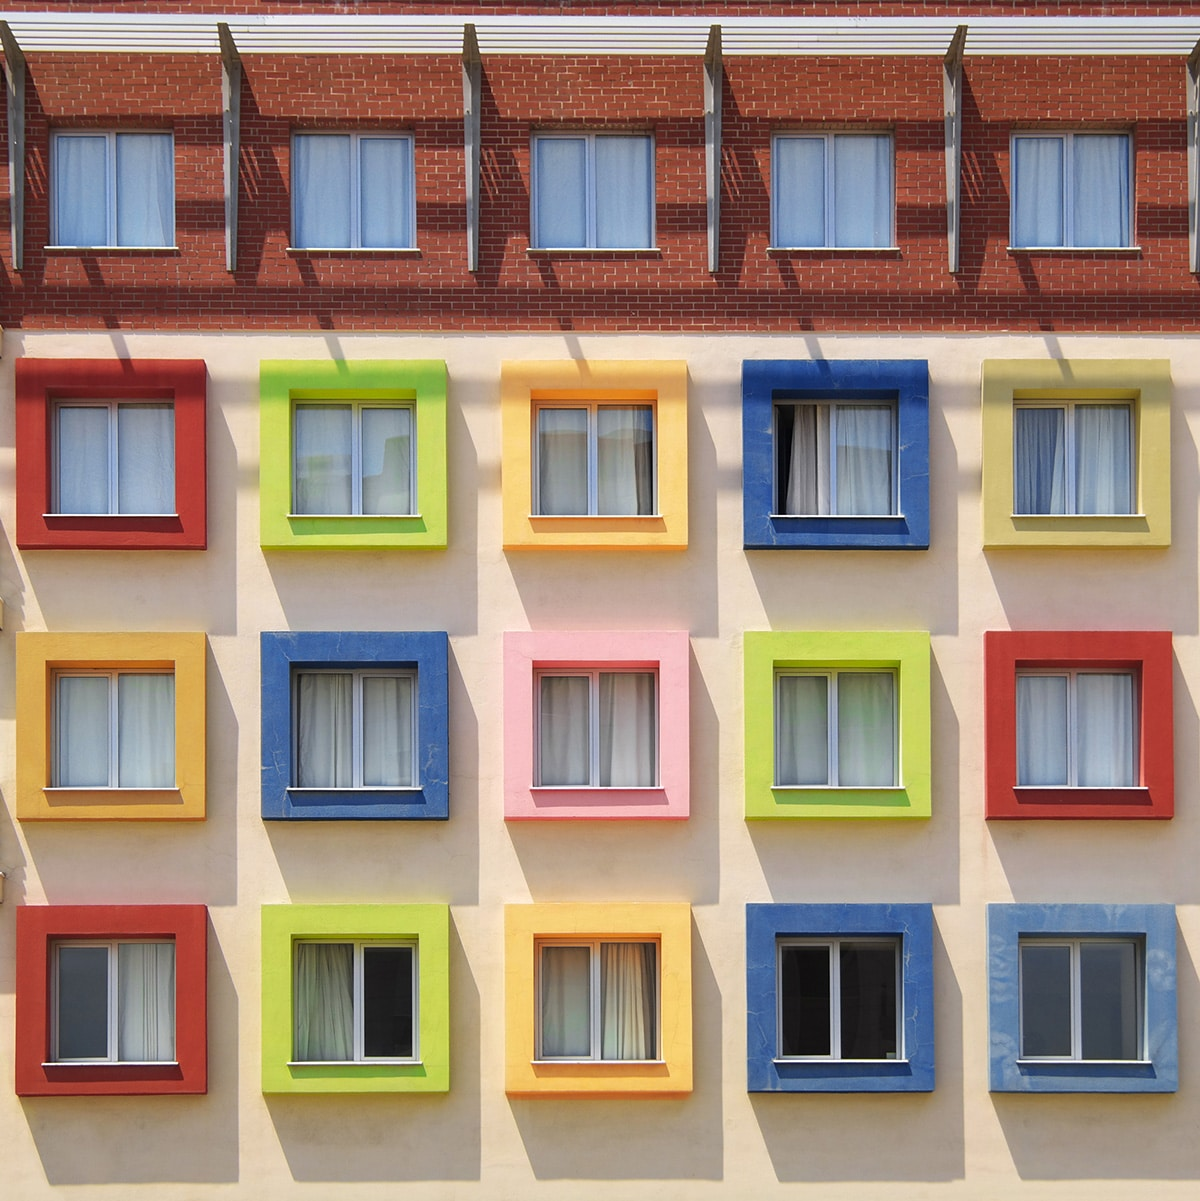 Building with Colorful Windows